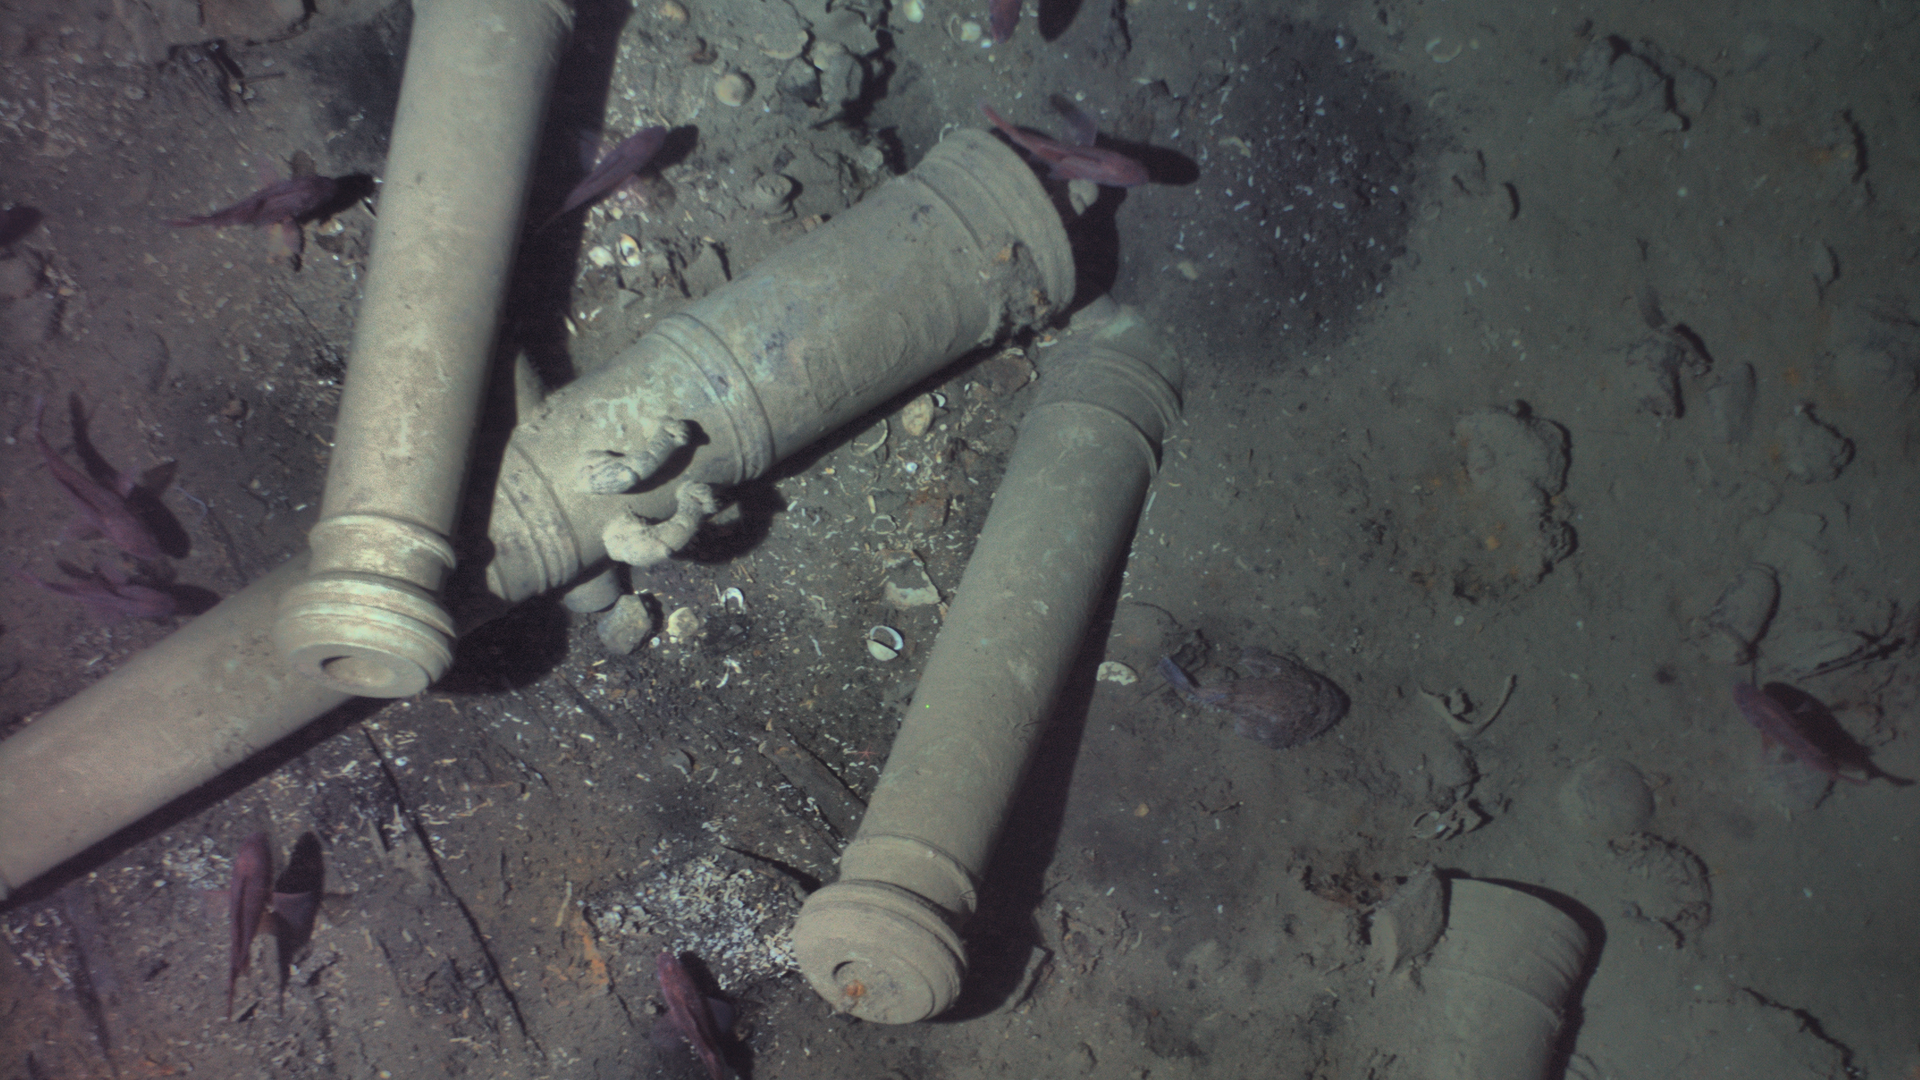 Image from an autonomous underwater vehicle, showing the wreckage of the San Jose's cannons.